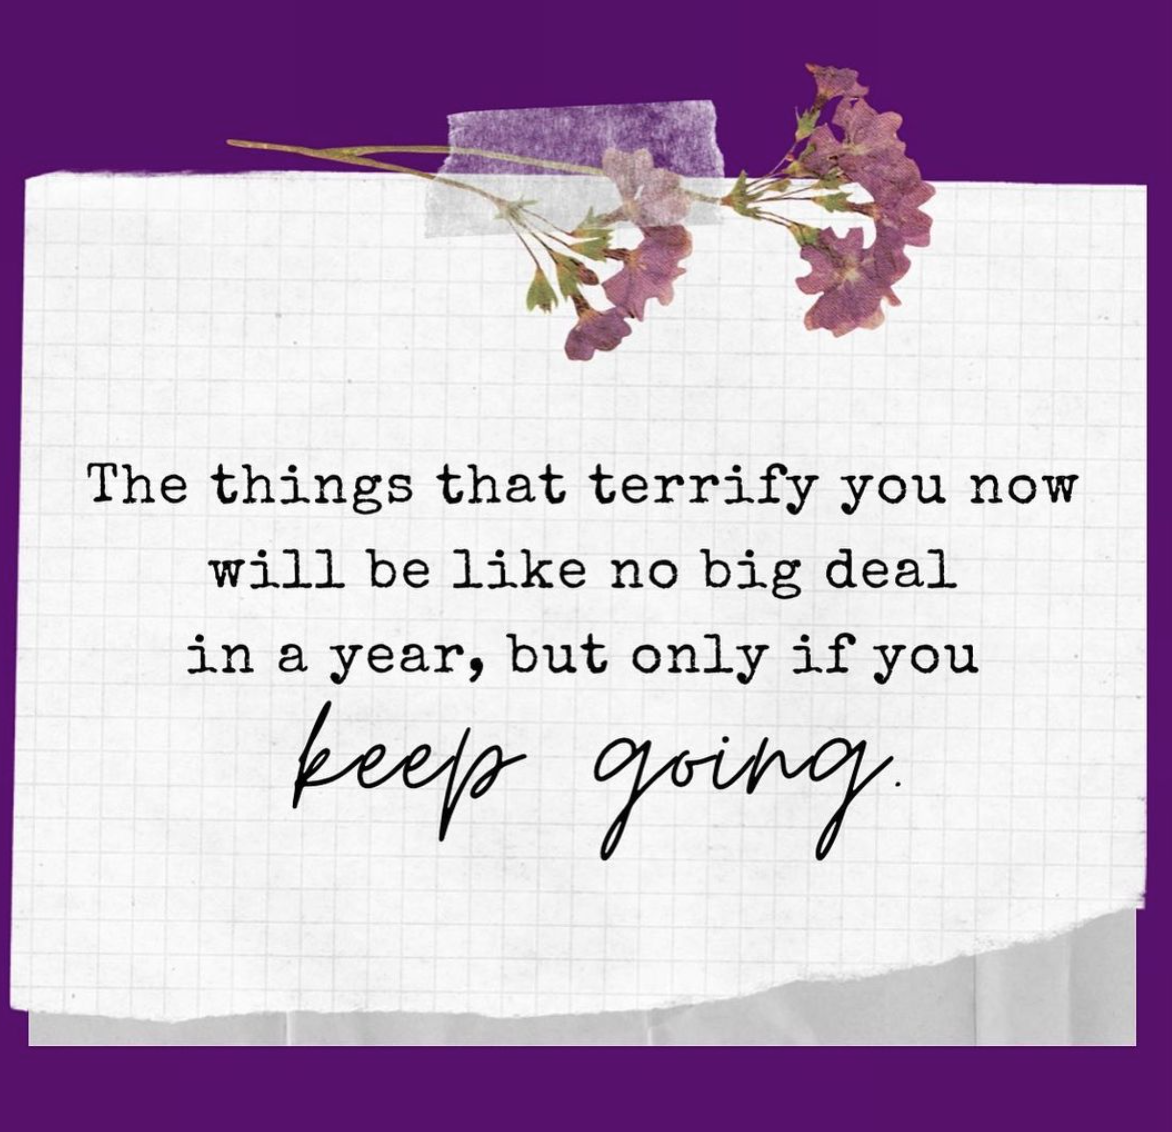 [Image] The things that terrify you now will be like no big deal in a year, but only if you keep going